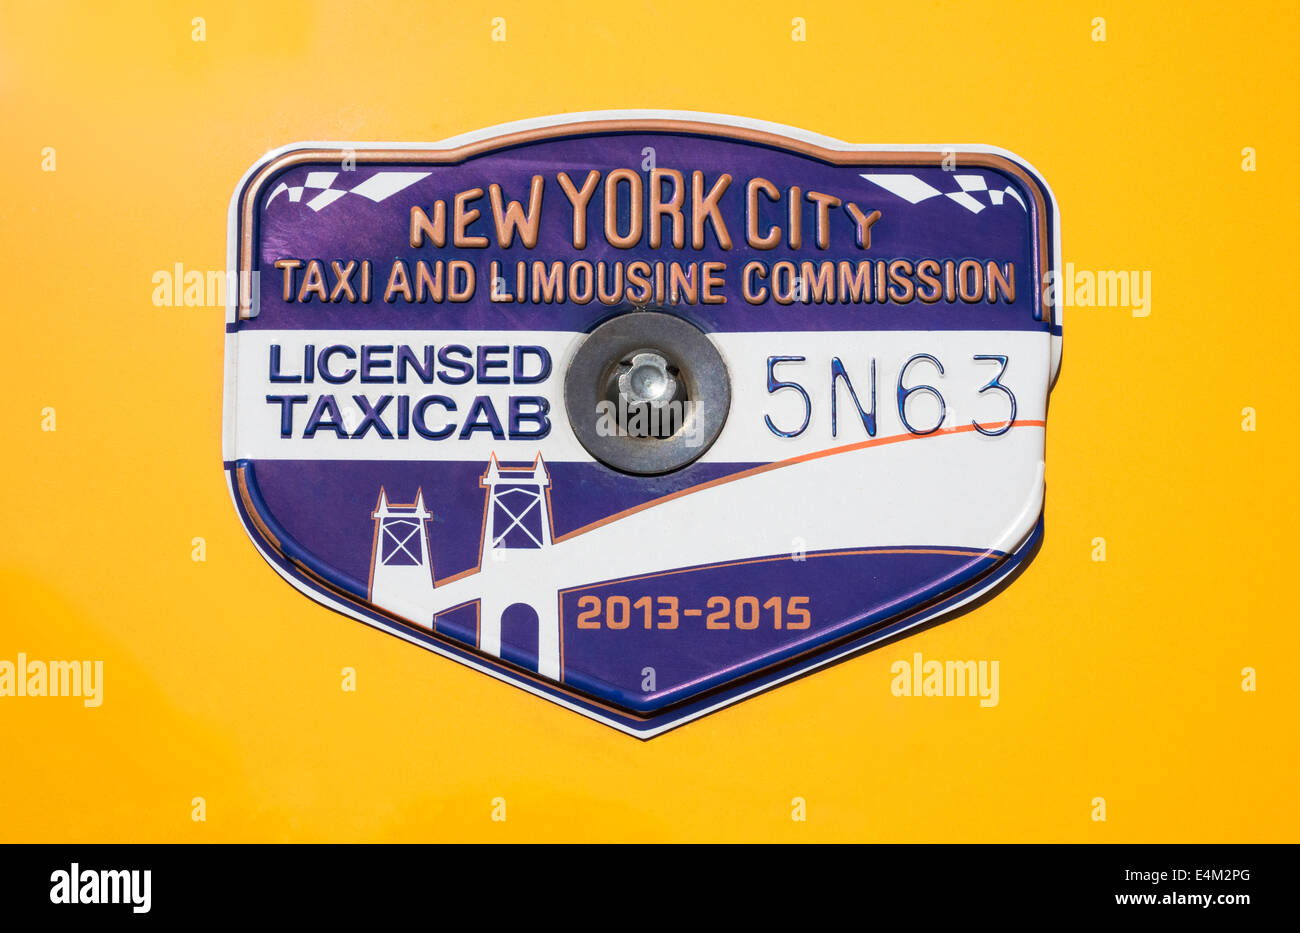 New York City yellow taxicab medallion for 2013-2015 - Stock Image